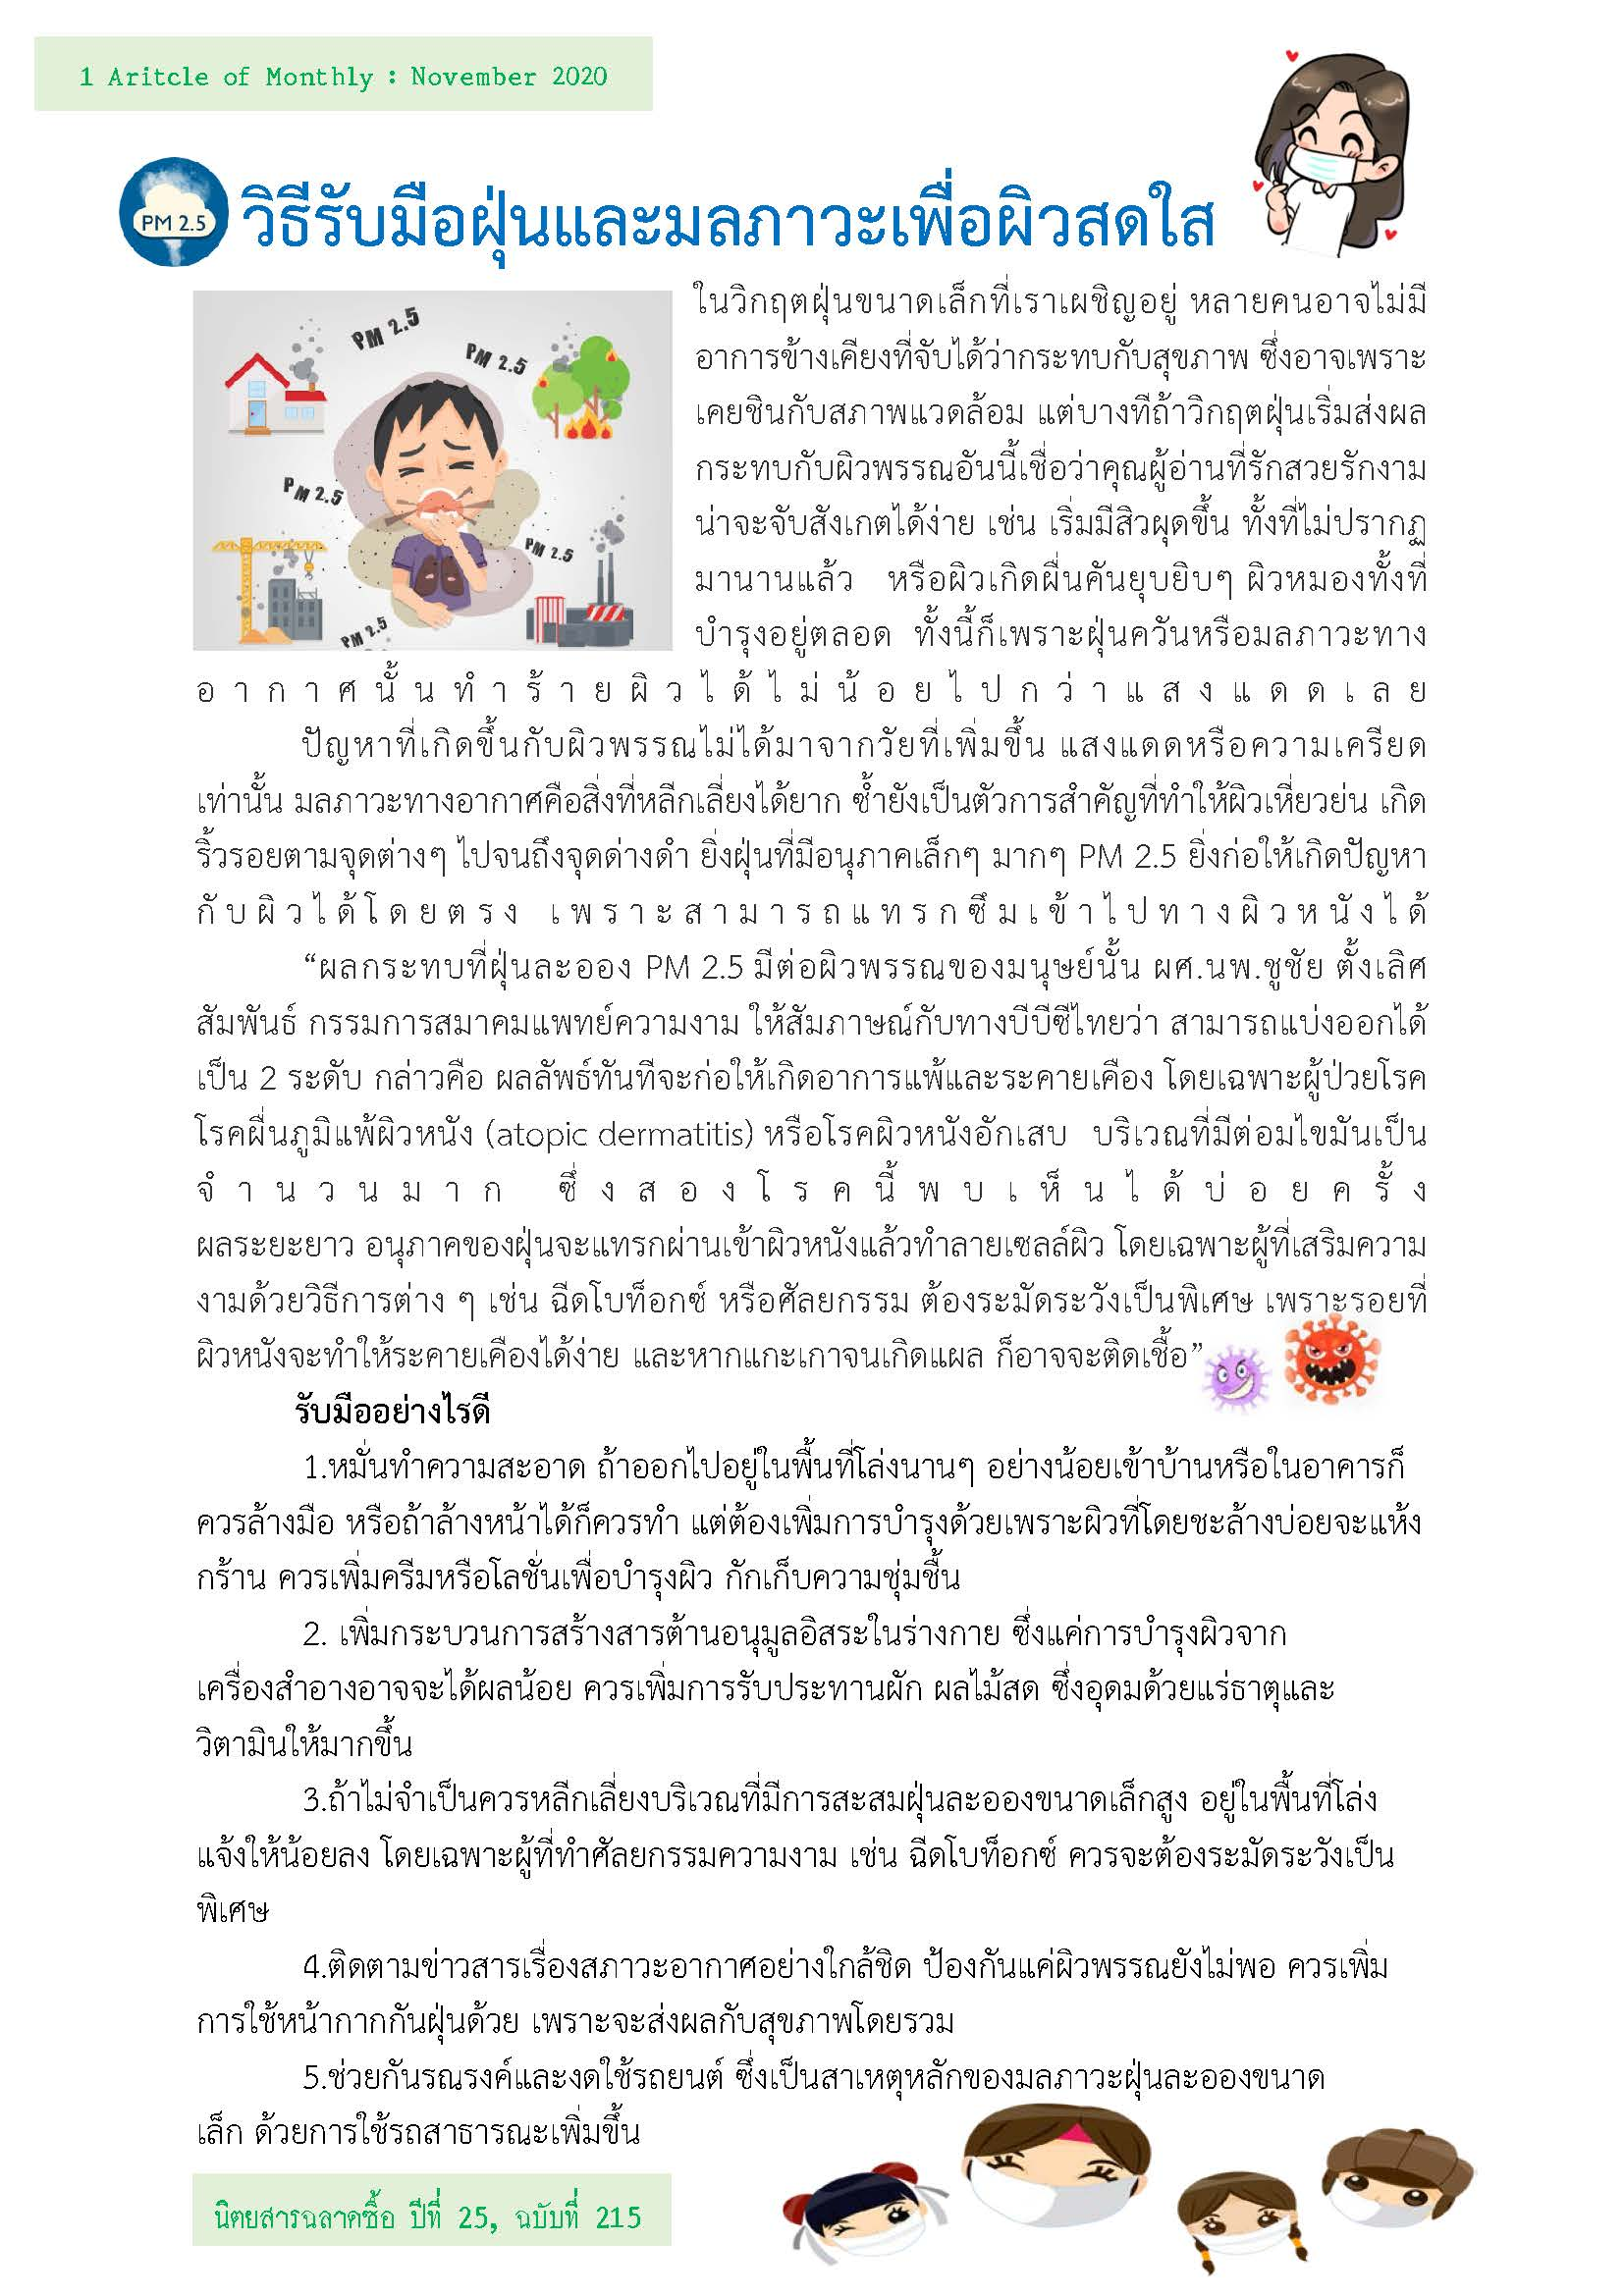 Article of Monthly